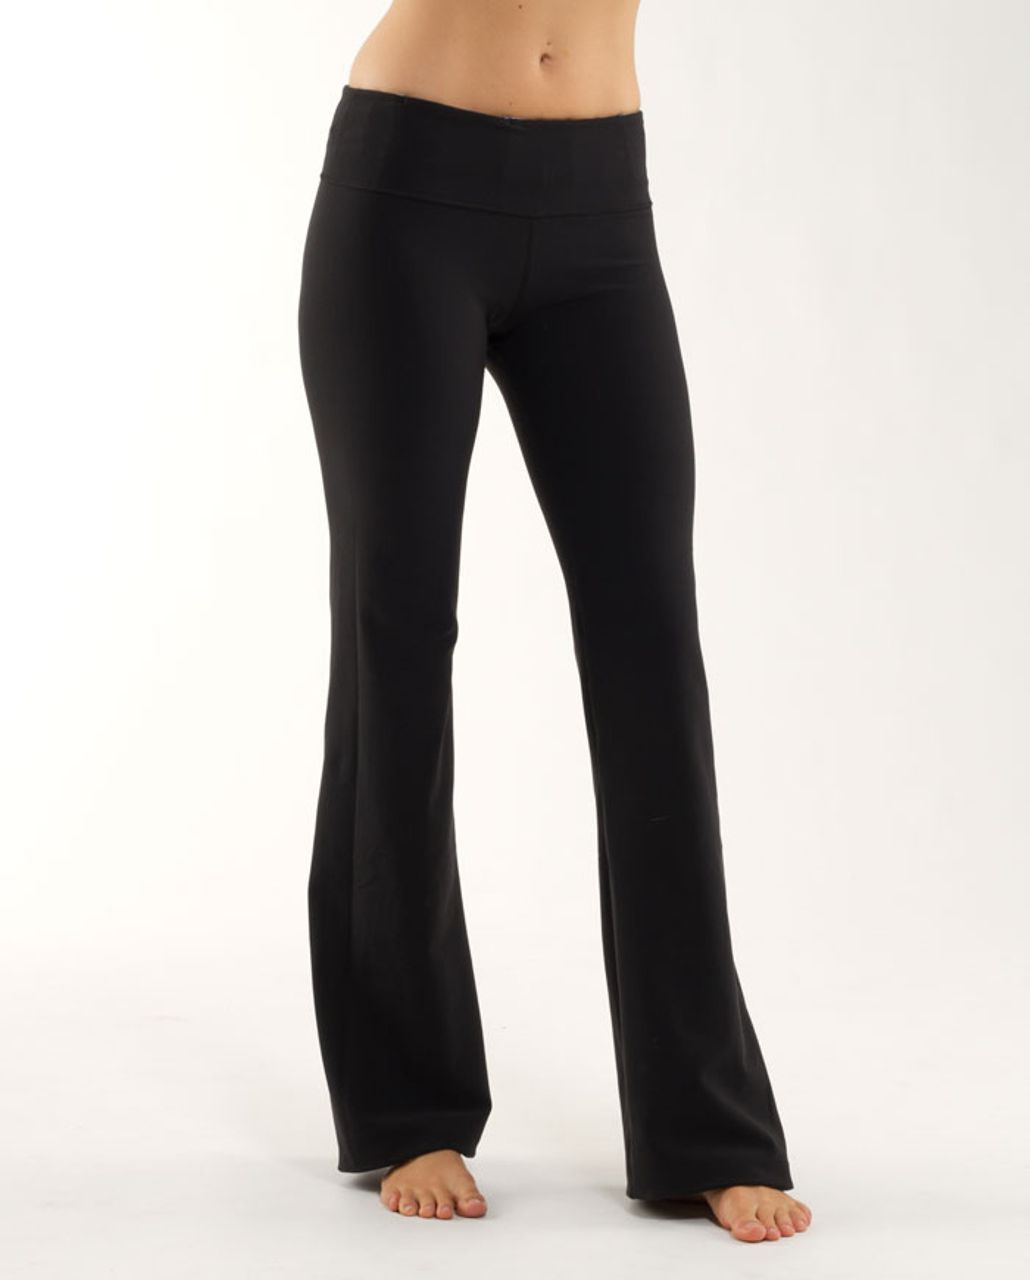 Lululemon Groove Pant (Regular) - Black /  Quilting Winter 1 /  Black Swan Heathered Black Herringbone